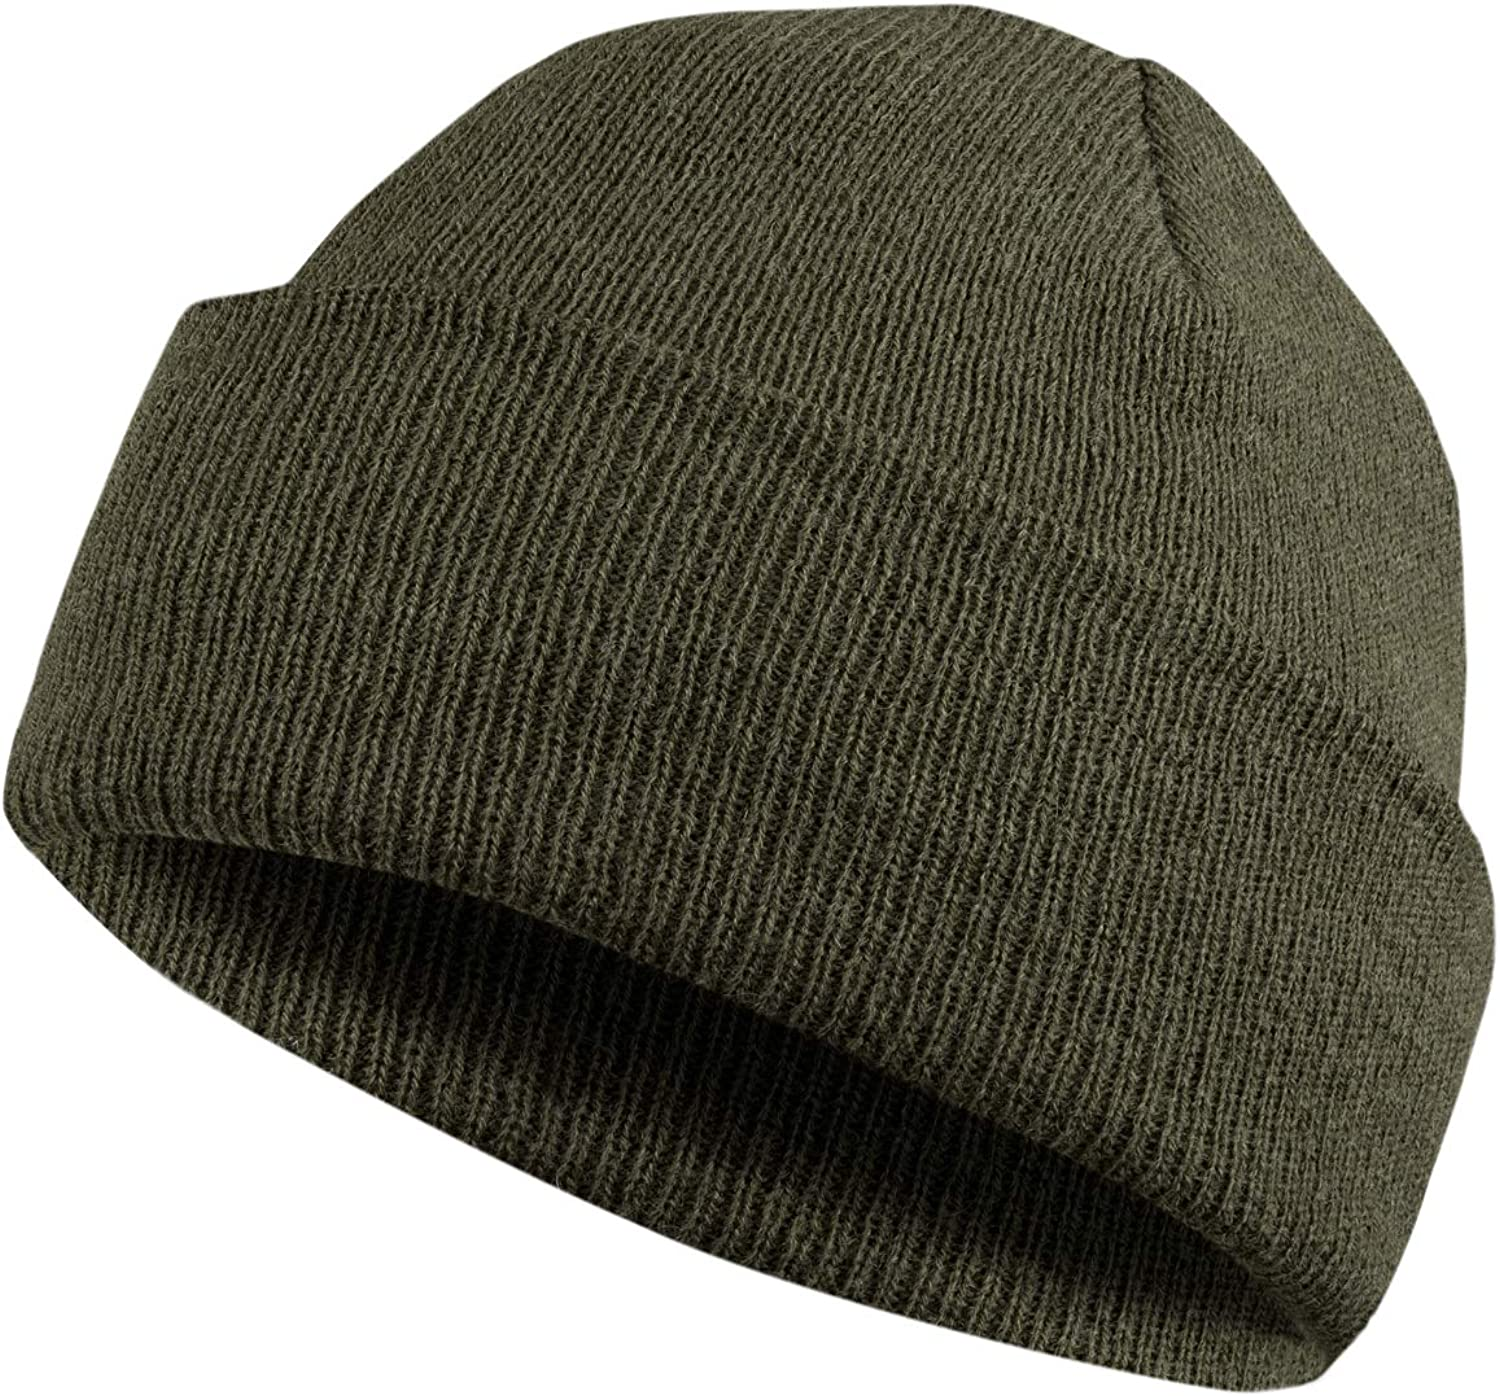 MERIWOOL Beanie Hat for Men n Women Merino Wool Ribbed Cuff Knit Beanie Hat